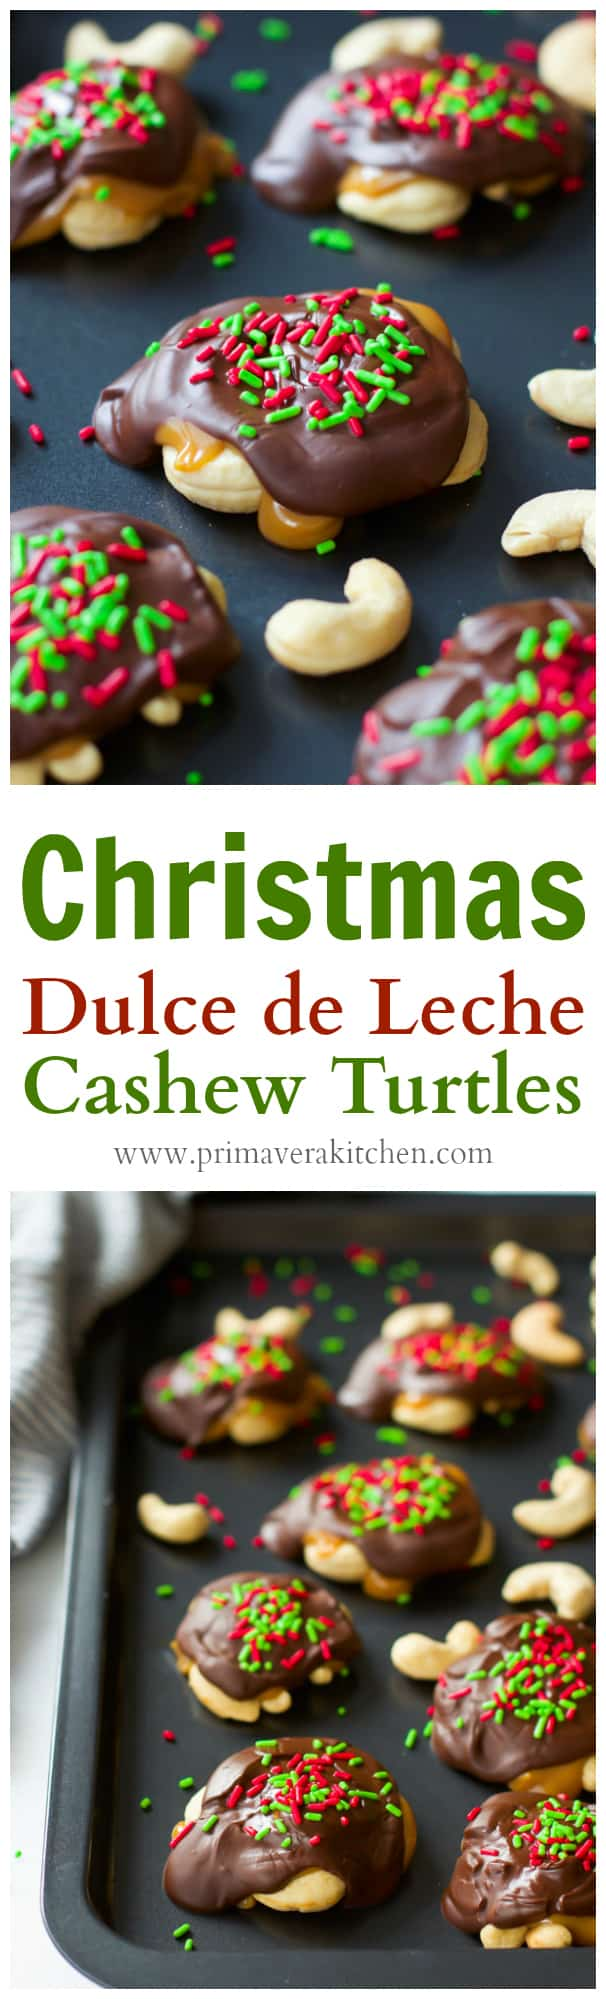 christmas-dulce-de-leche-cashew-turtles- These Christmas Dulce de Leche Cashew Turtles are seriously ultra-easy to make and just require 4-ingredient. The only thing you need to do is to pile some roasted cashews, cover with Dulce de Leche, top with dark chocolate and Christmas sprinkles.